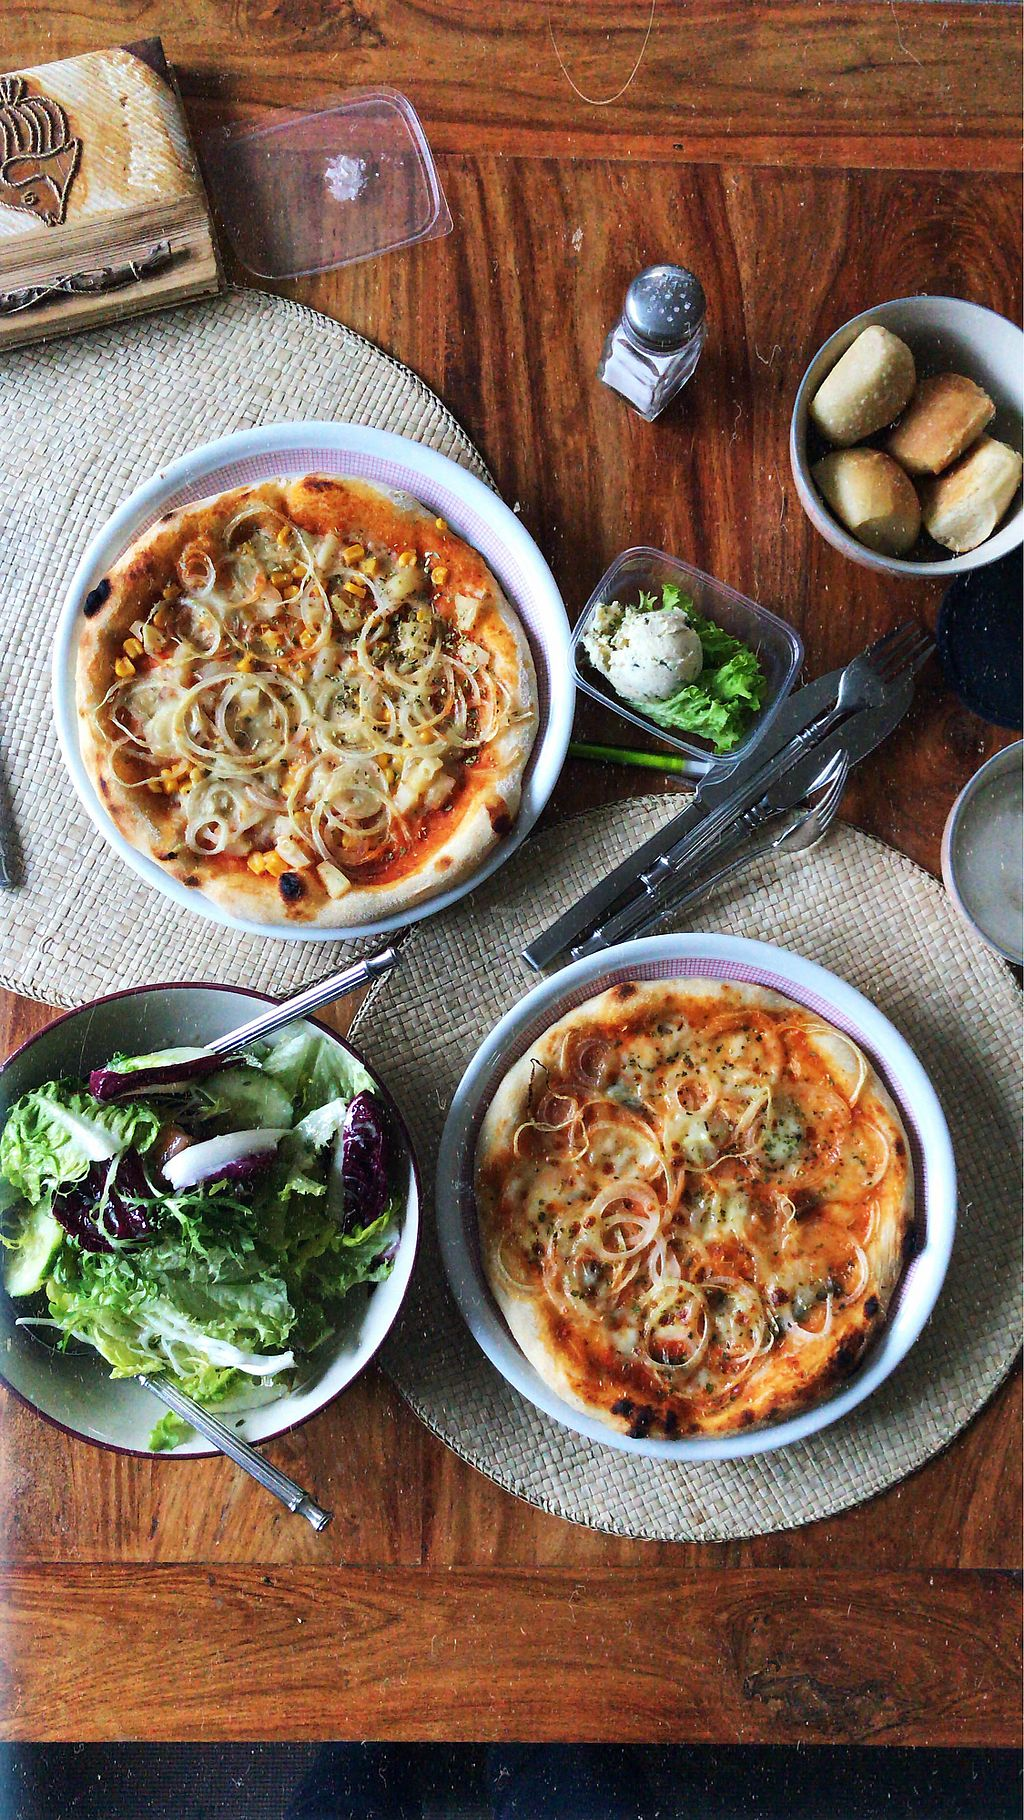 """Photo of Casa Tua  by <a href=""""/members/profile/paralipomena"""">paralipomena</a> <br/>The upper left pizza is vegan. Bread, spread and salad are vegan as well. ? <br/> April 10, 2018  - <a href='/contact/abuse/image/78537/383465'>Report</a>"""